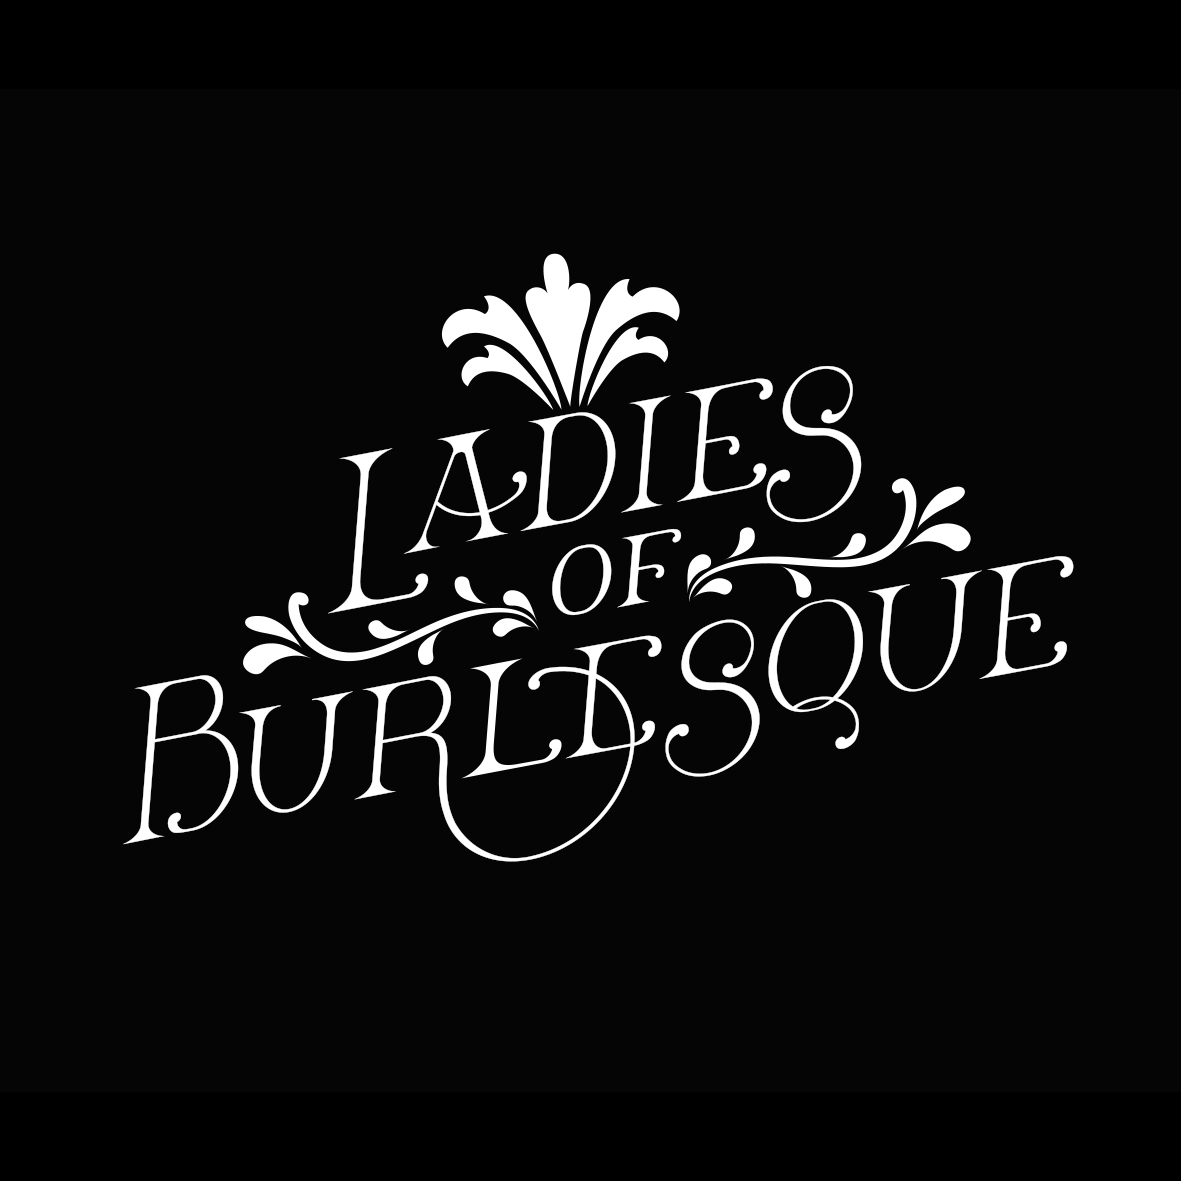 hello@ladiesofburlesque.com